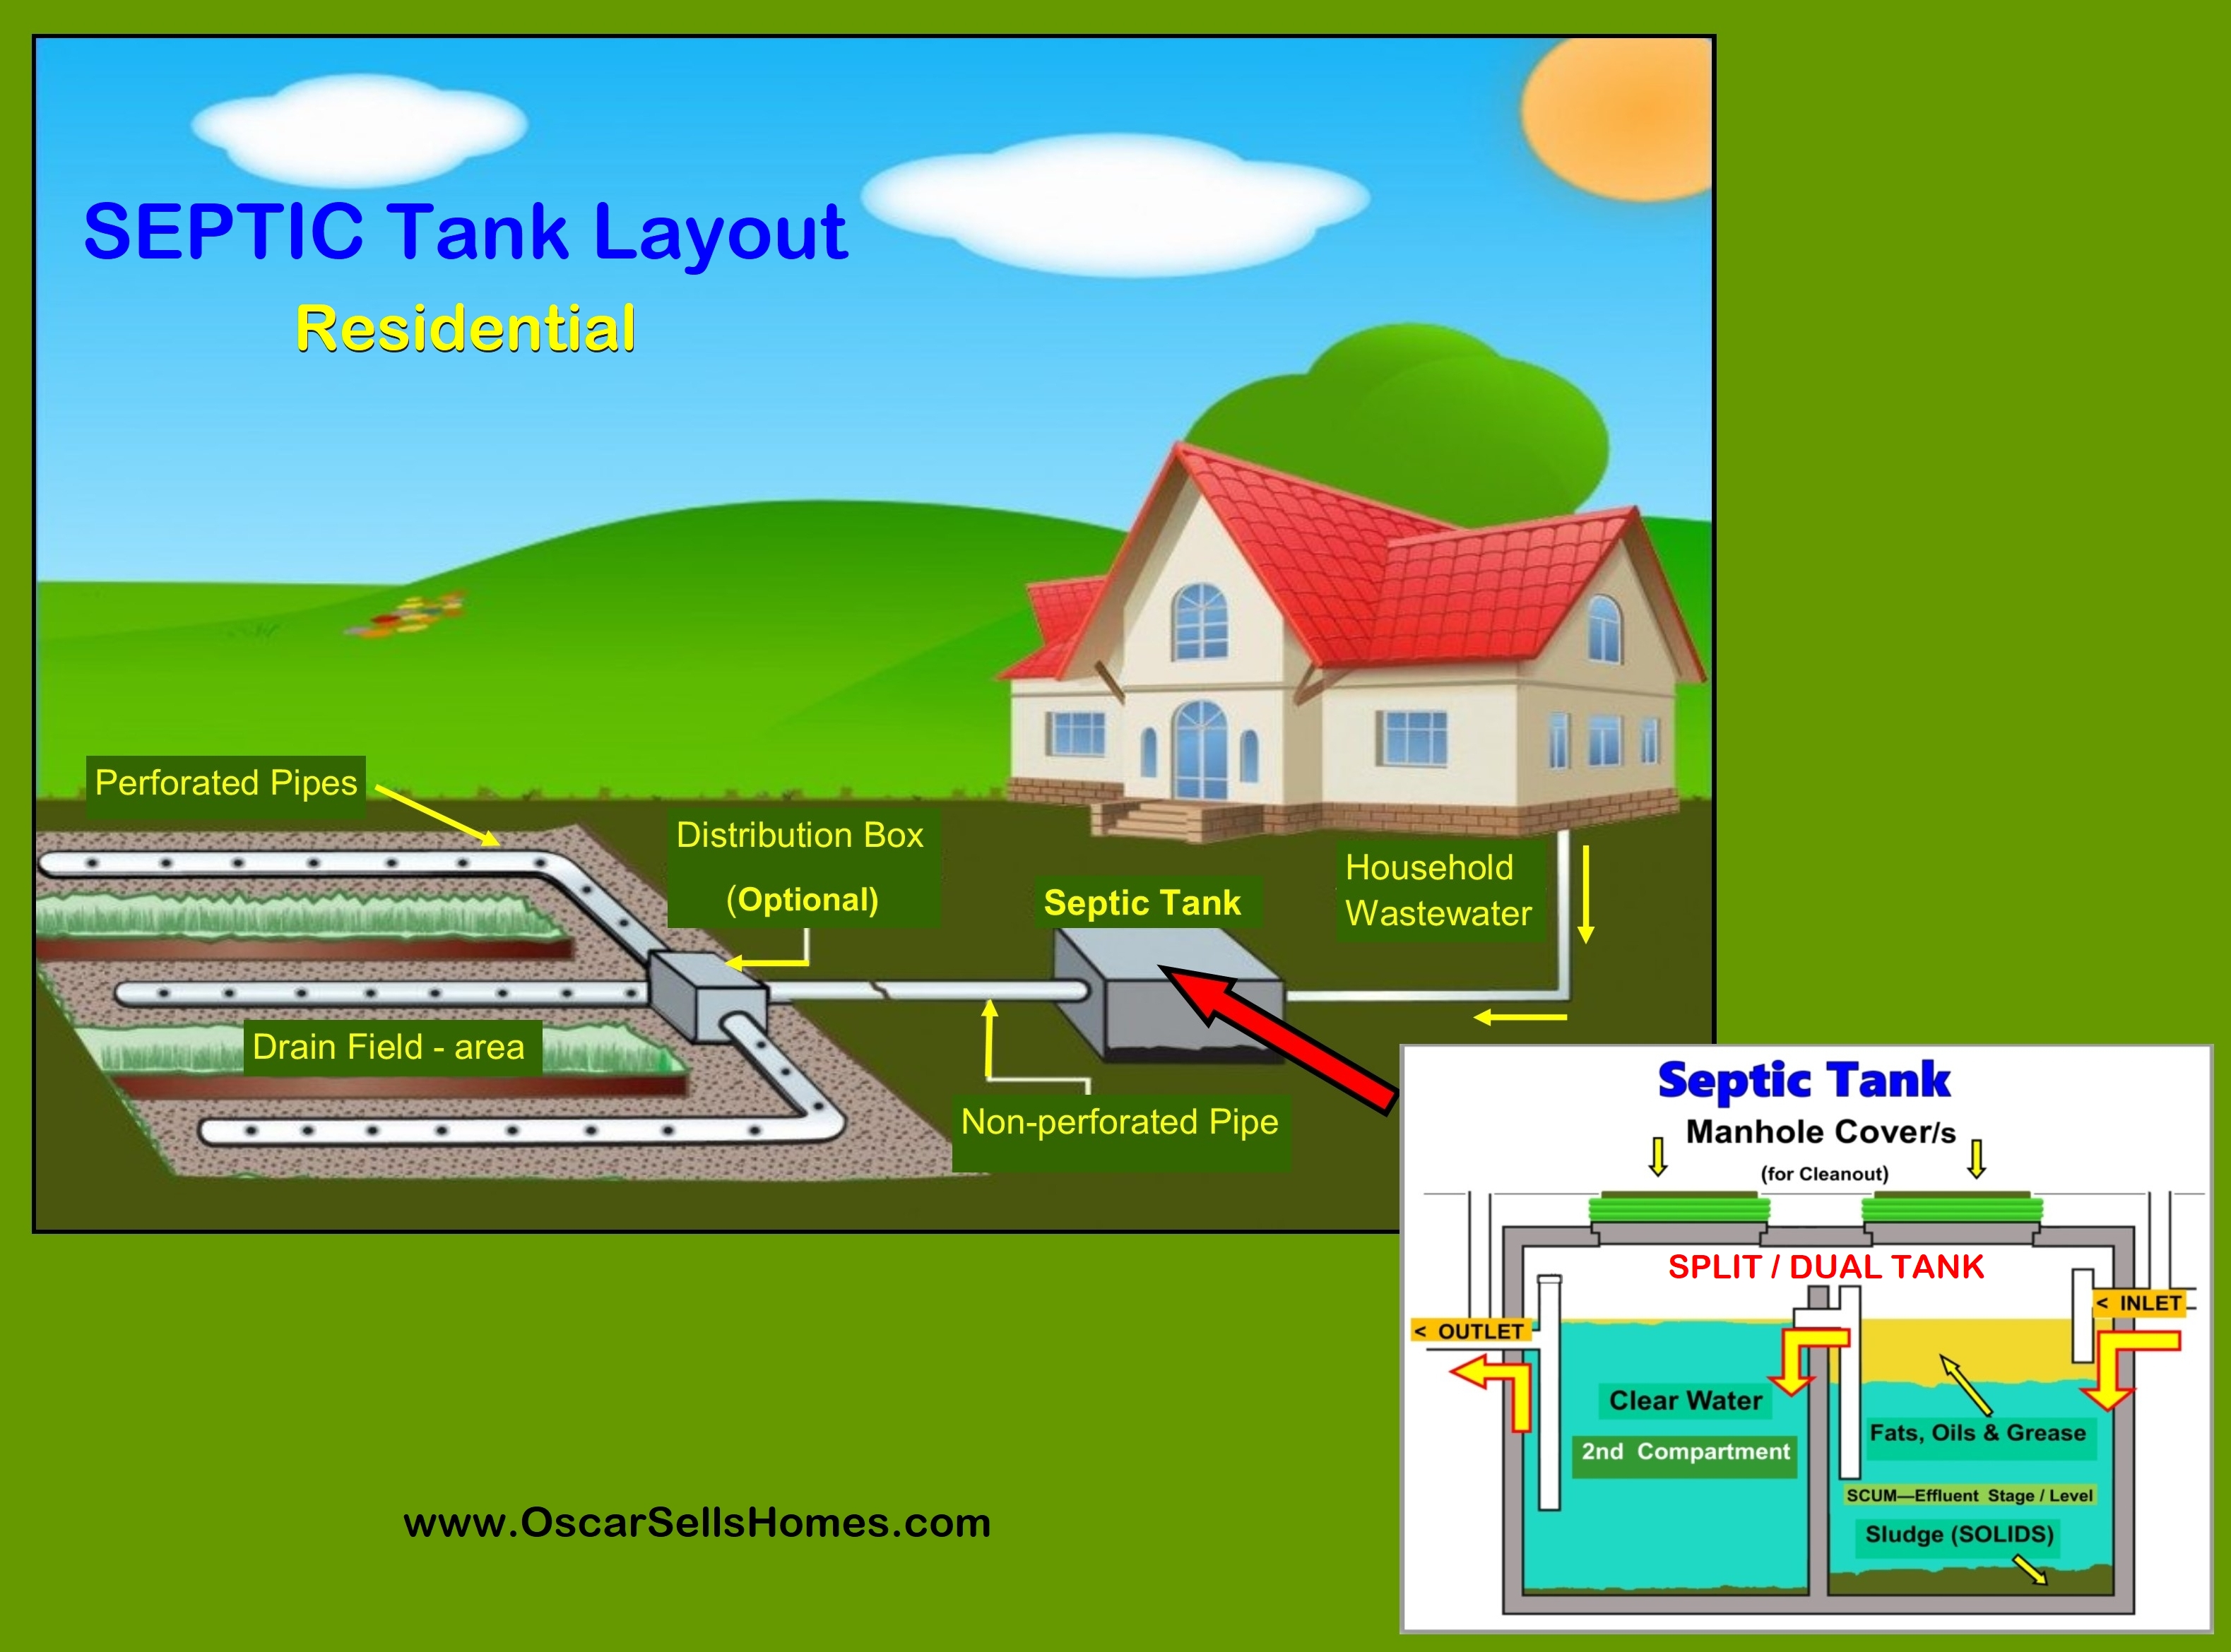 How Deep Is A Typical Septic Drain Field Field Wallpaper